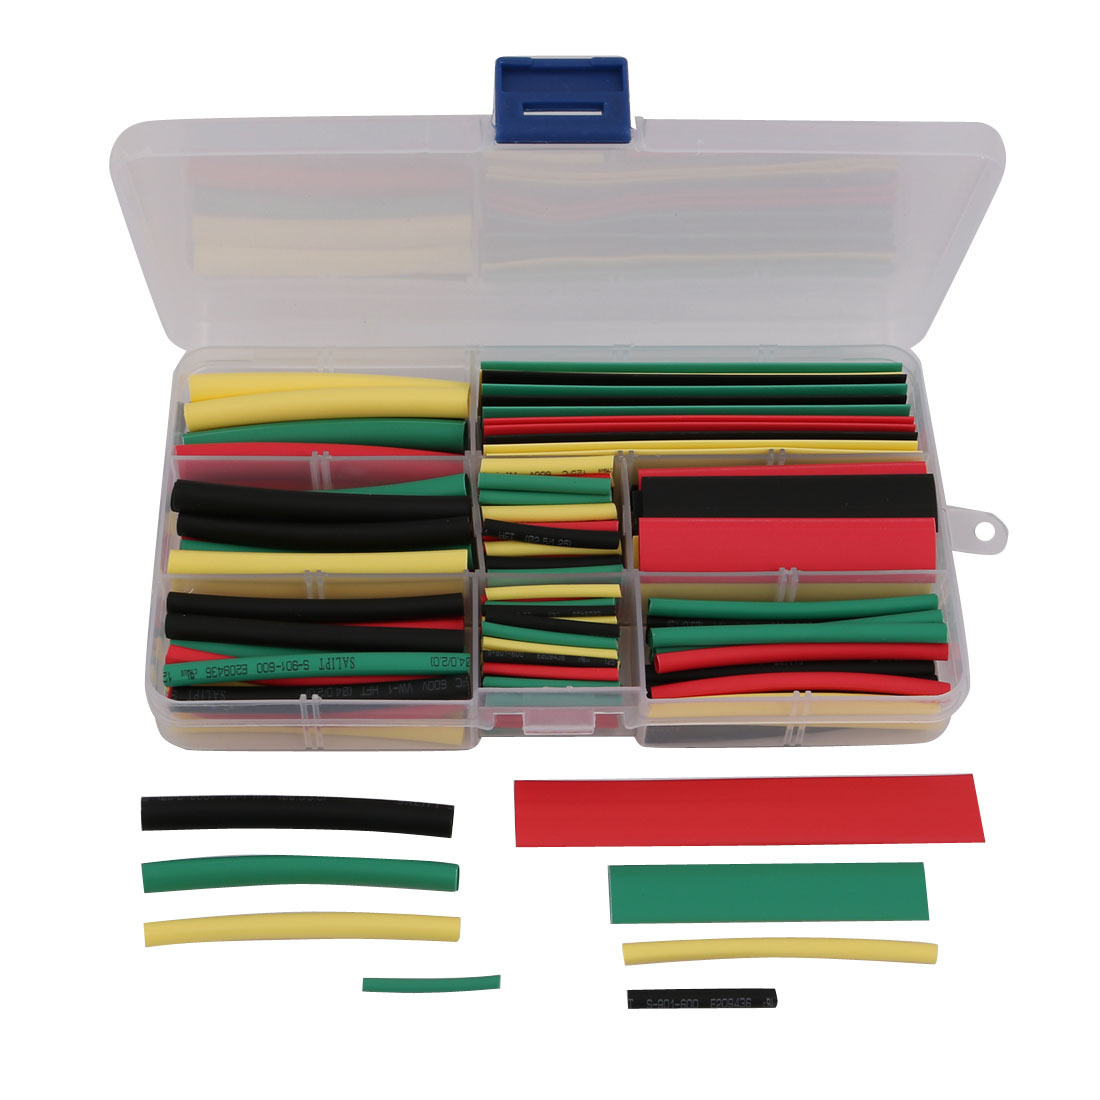 1Set 8 Size 4 Color Polyolefin Heat Shrinkable Tube Wrap Sleeve for Wire Repair